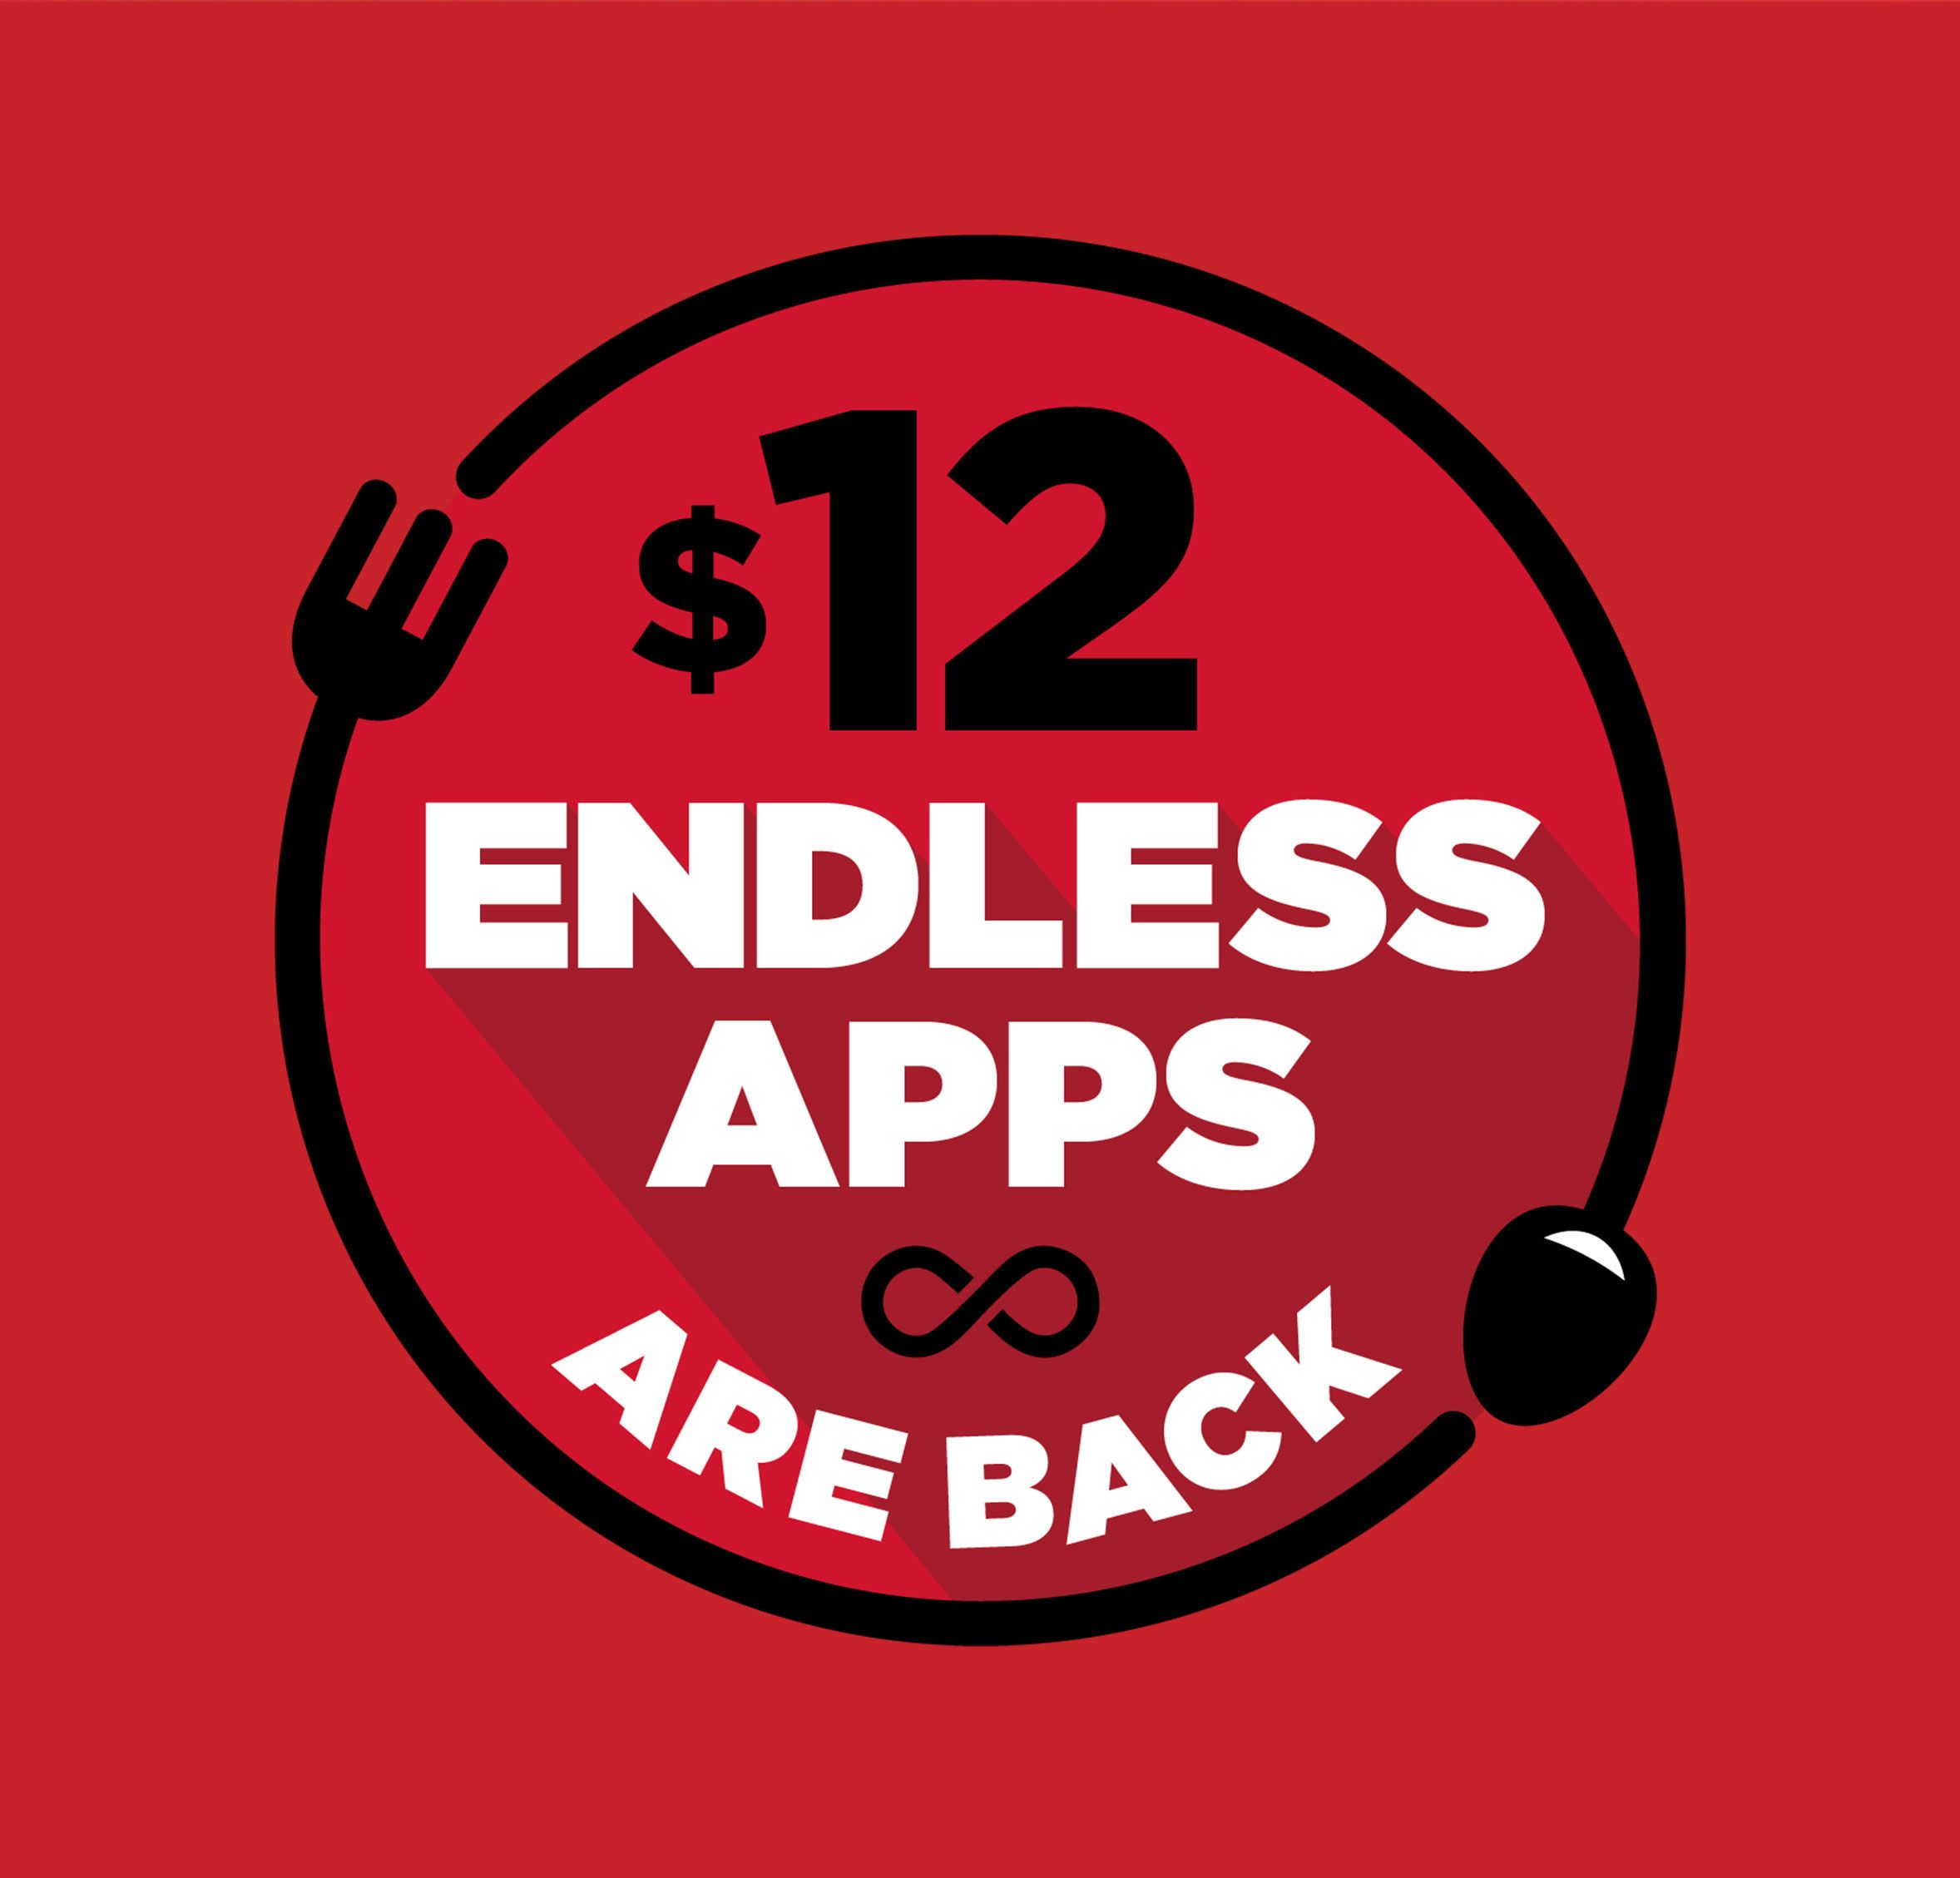 12.99 Endless Apps are back at Fridays! App, How to